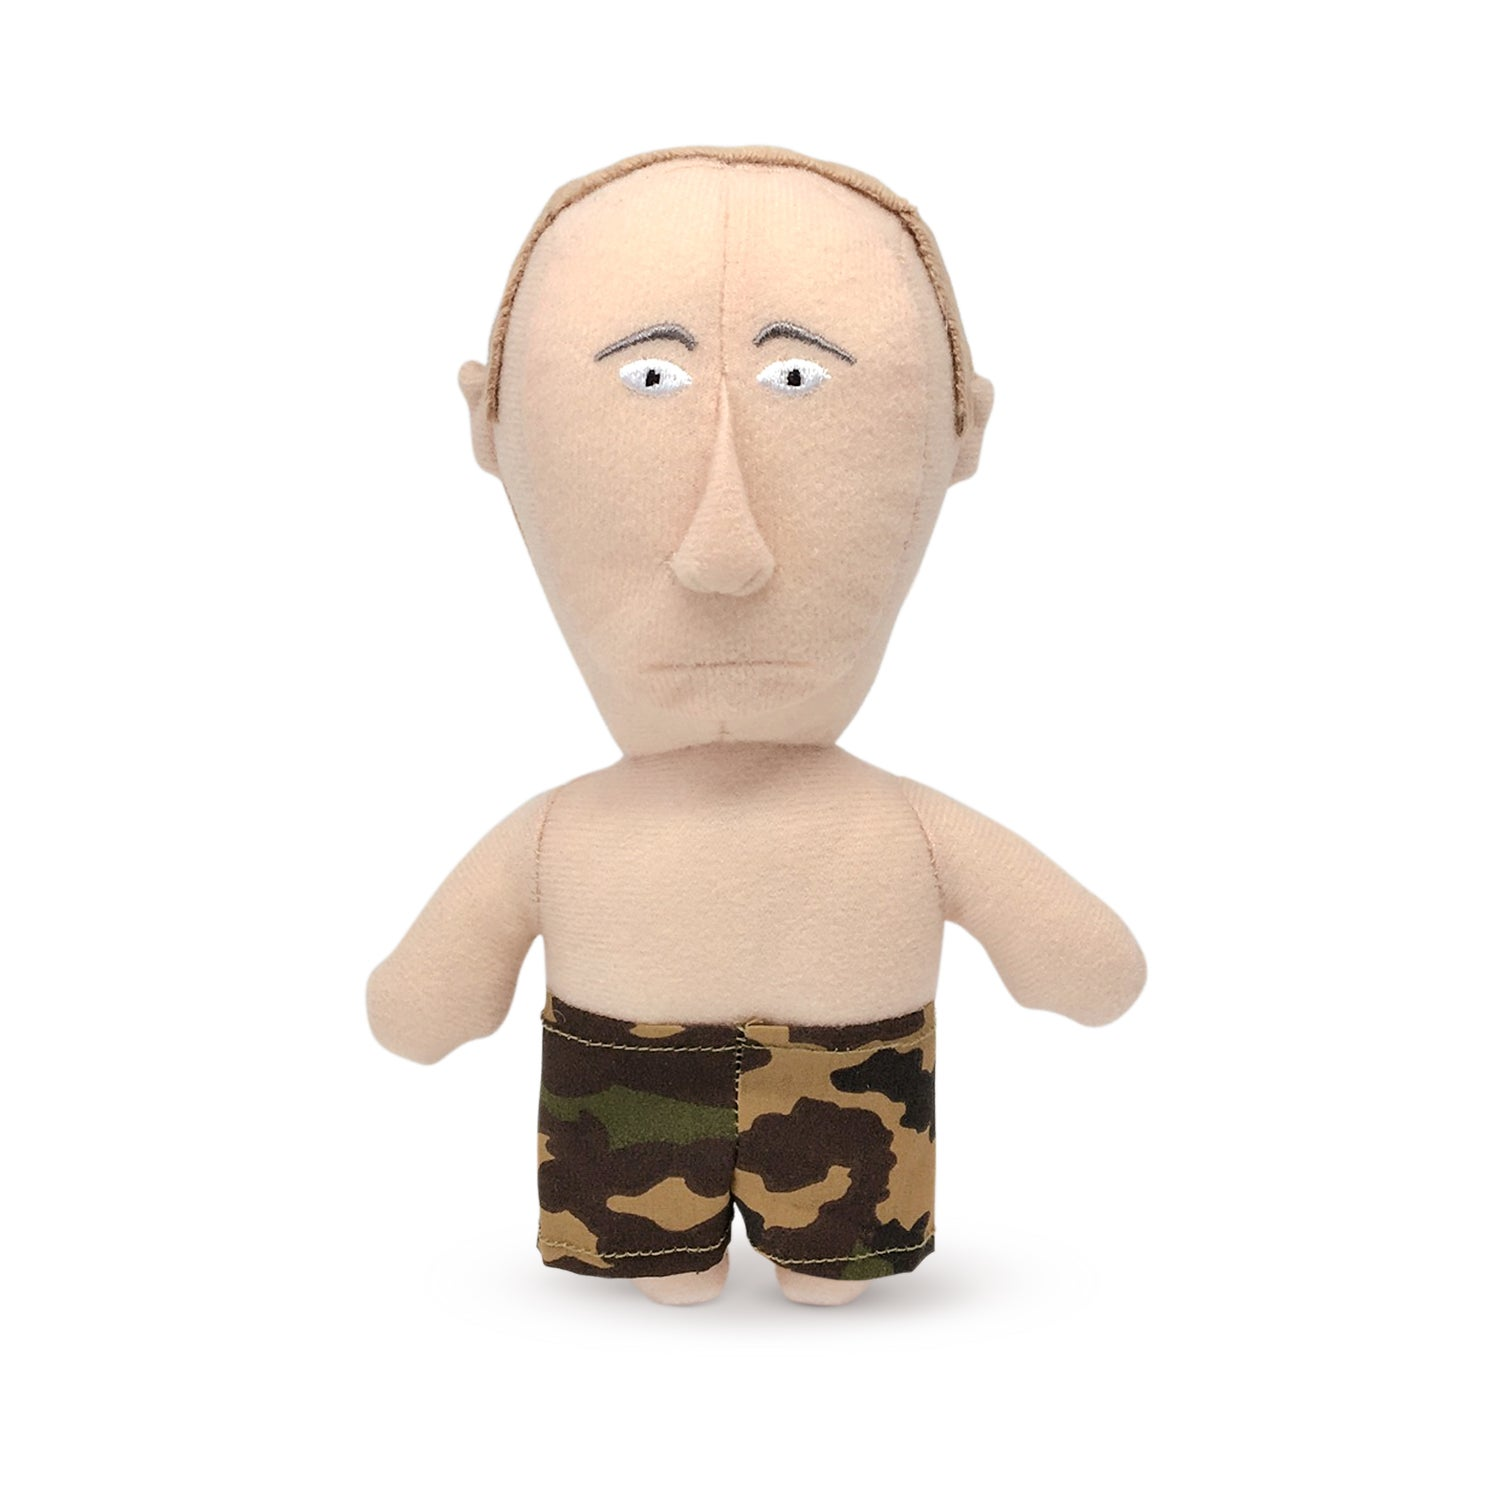 Image of Plush Vladimir